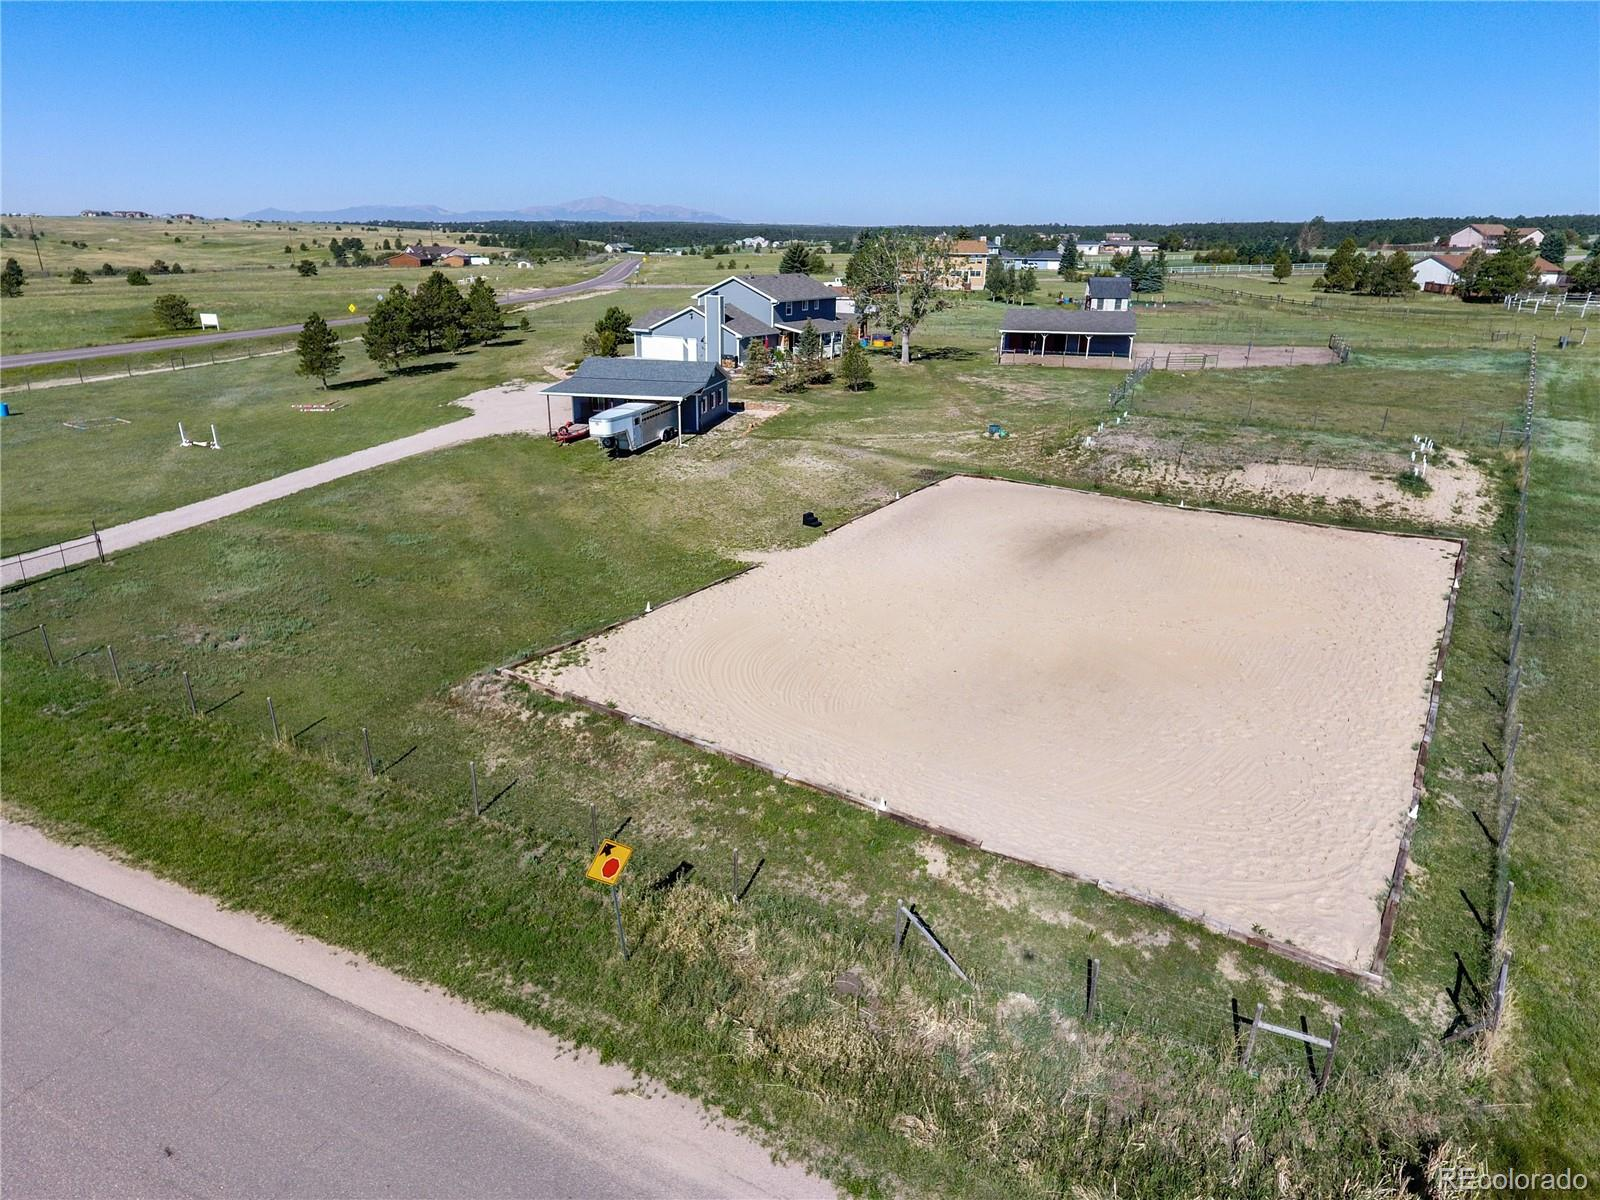 MLS# 7089085 - 6 - 13885 Halleluiah Trail, Elbert, CO 80106